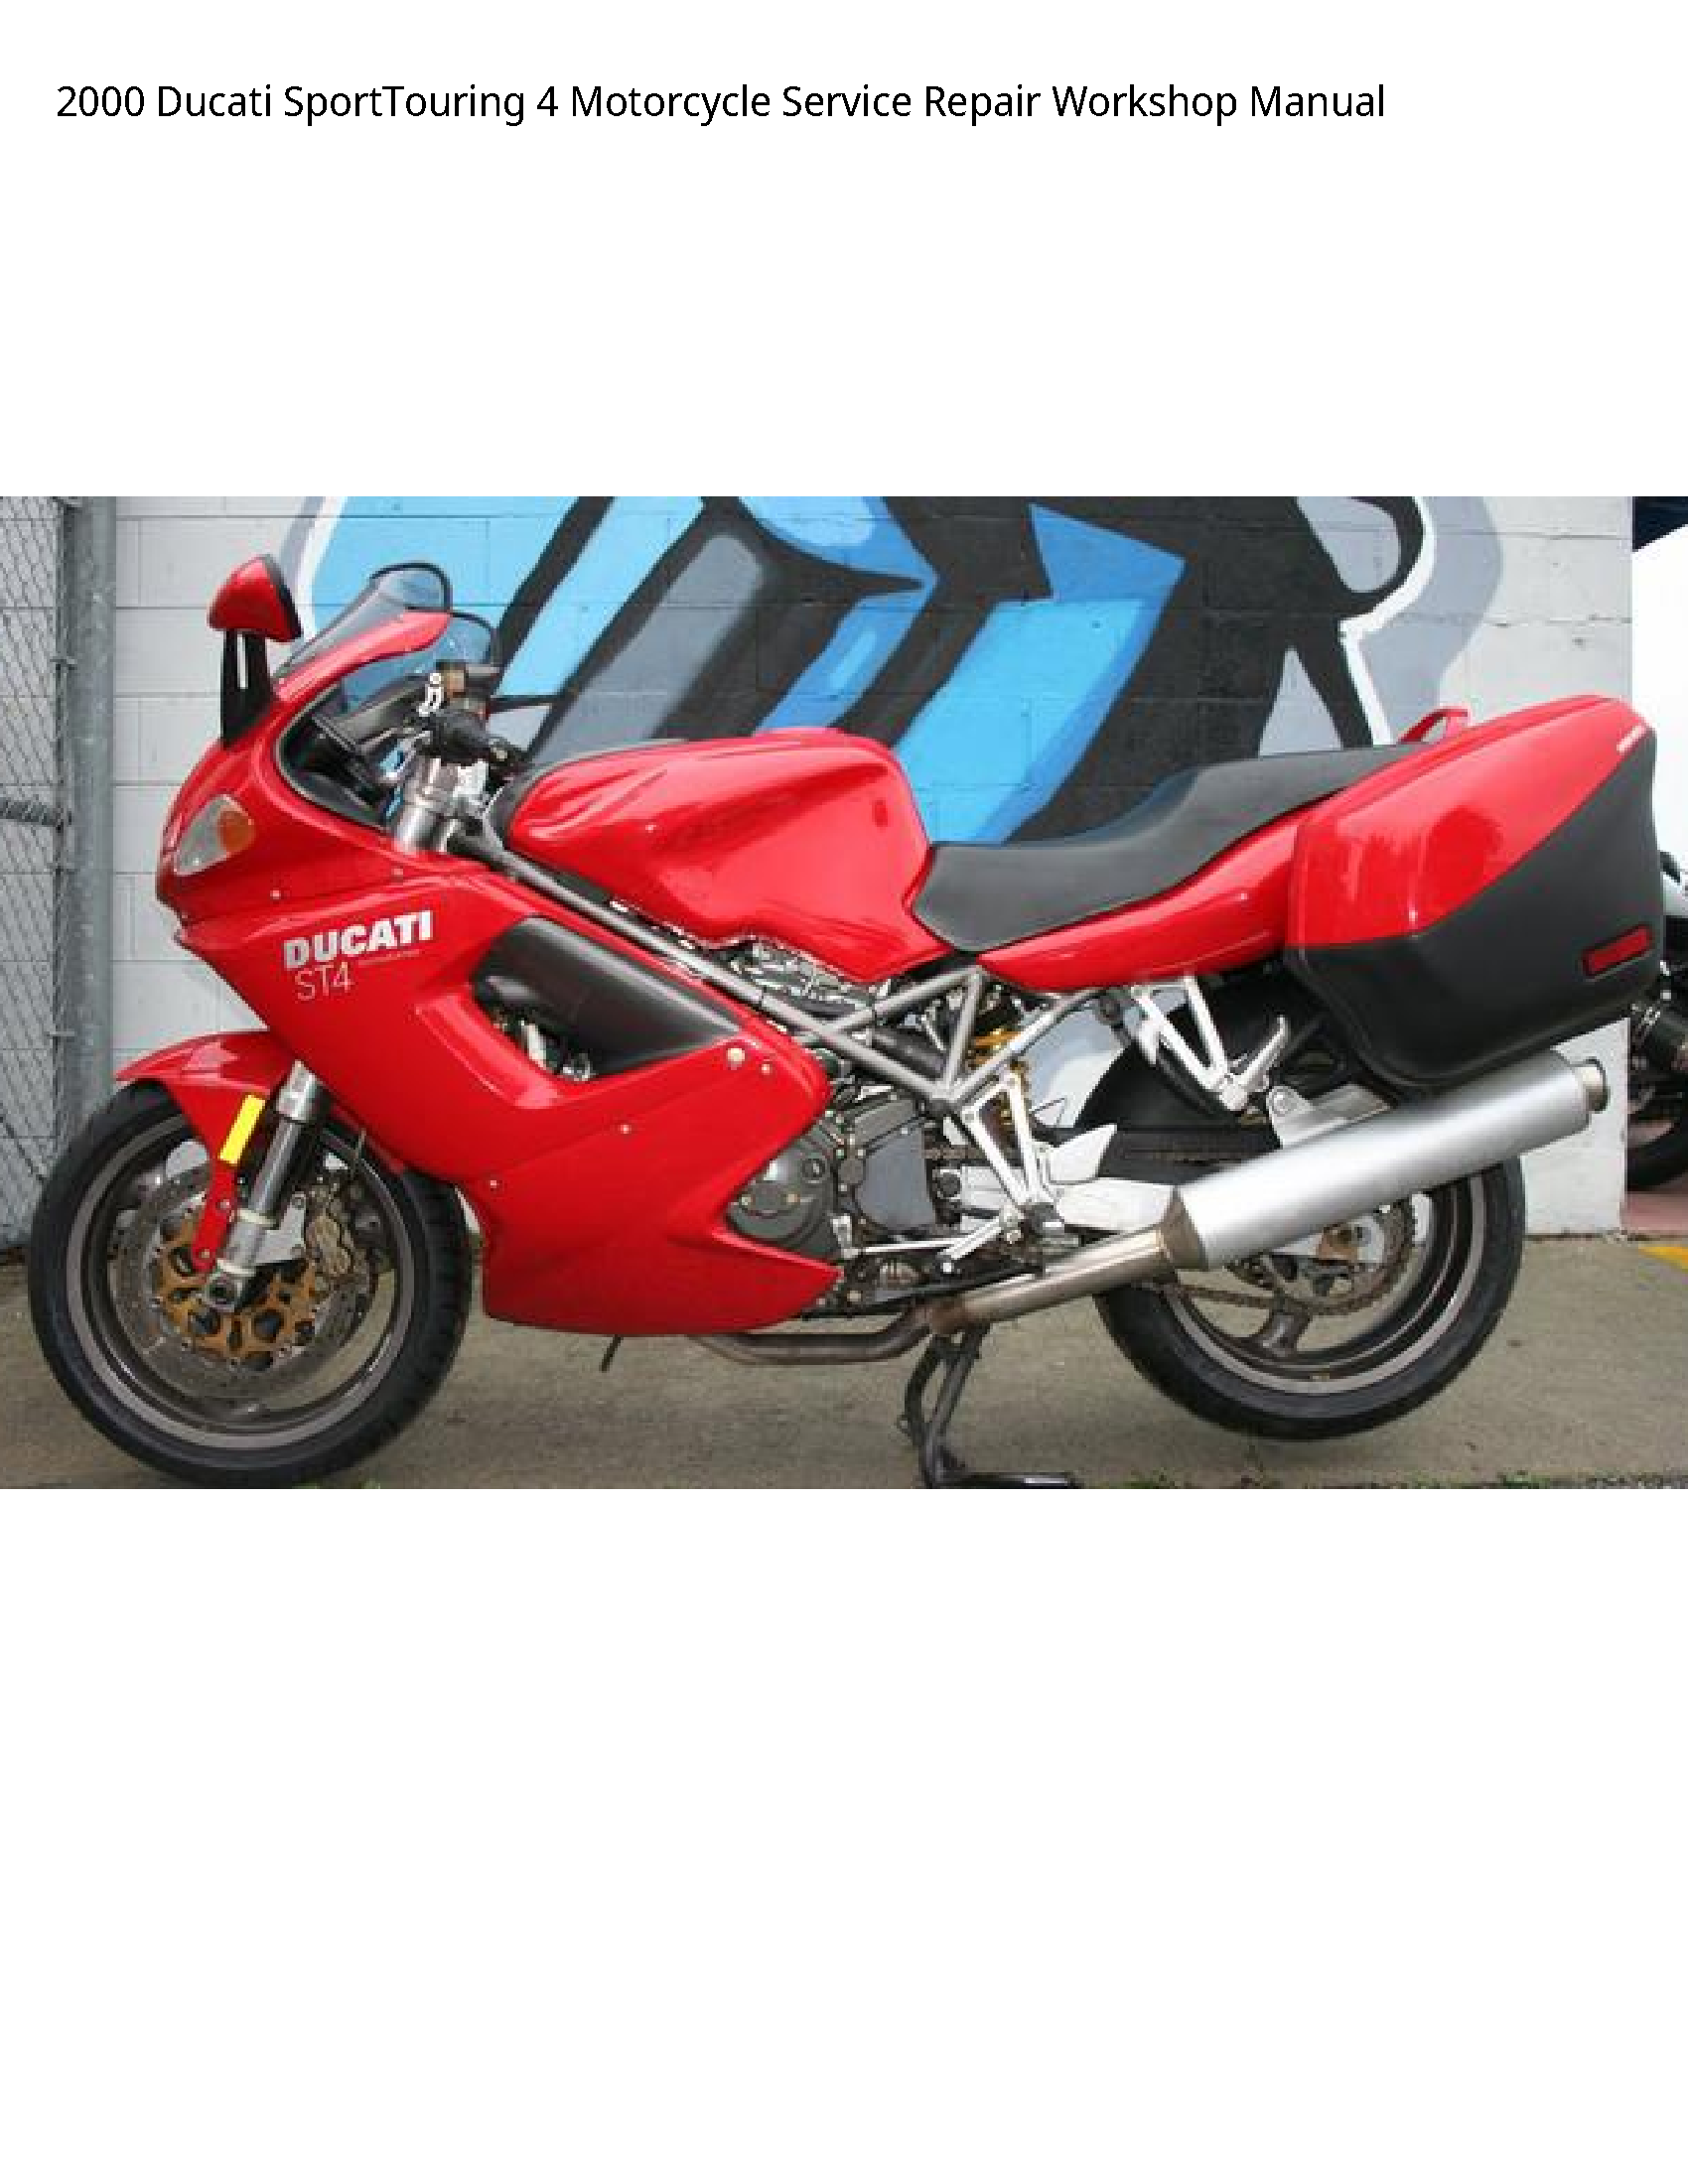 Ducati 4 SportTouring Motorcycle manual